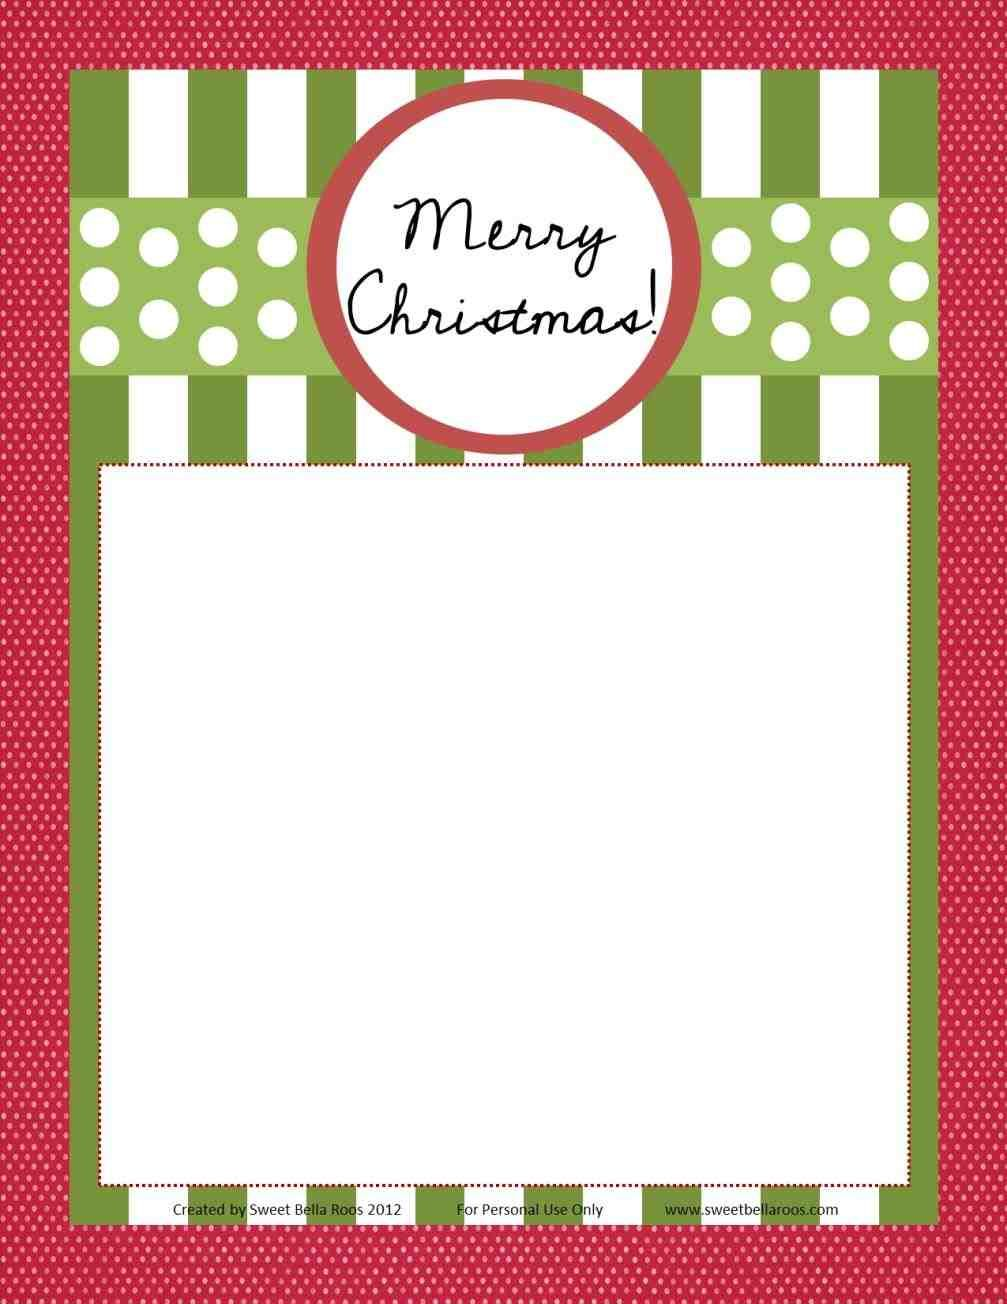 New Christmas Letter Template With Lines At TemasistemiNet